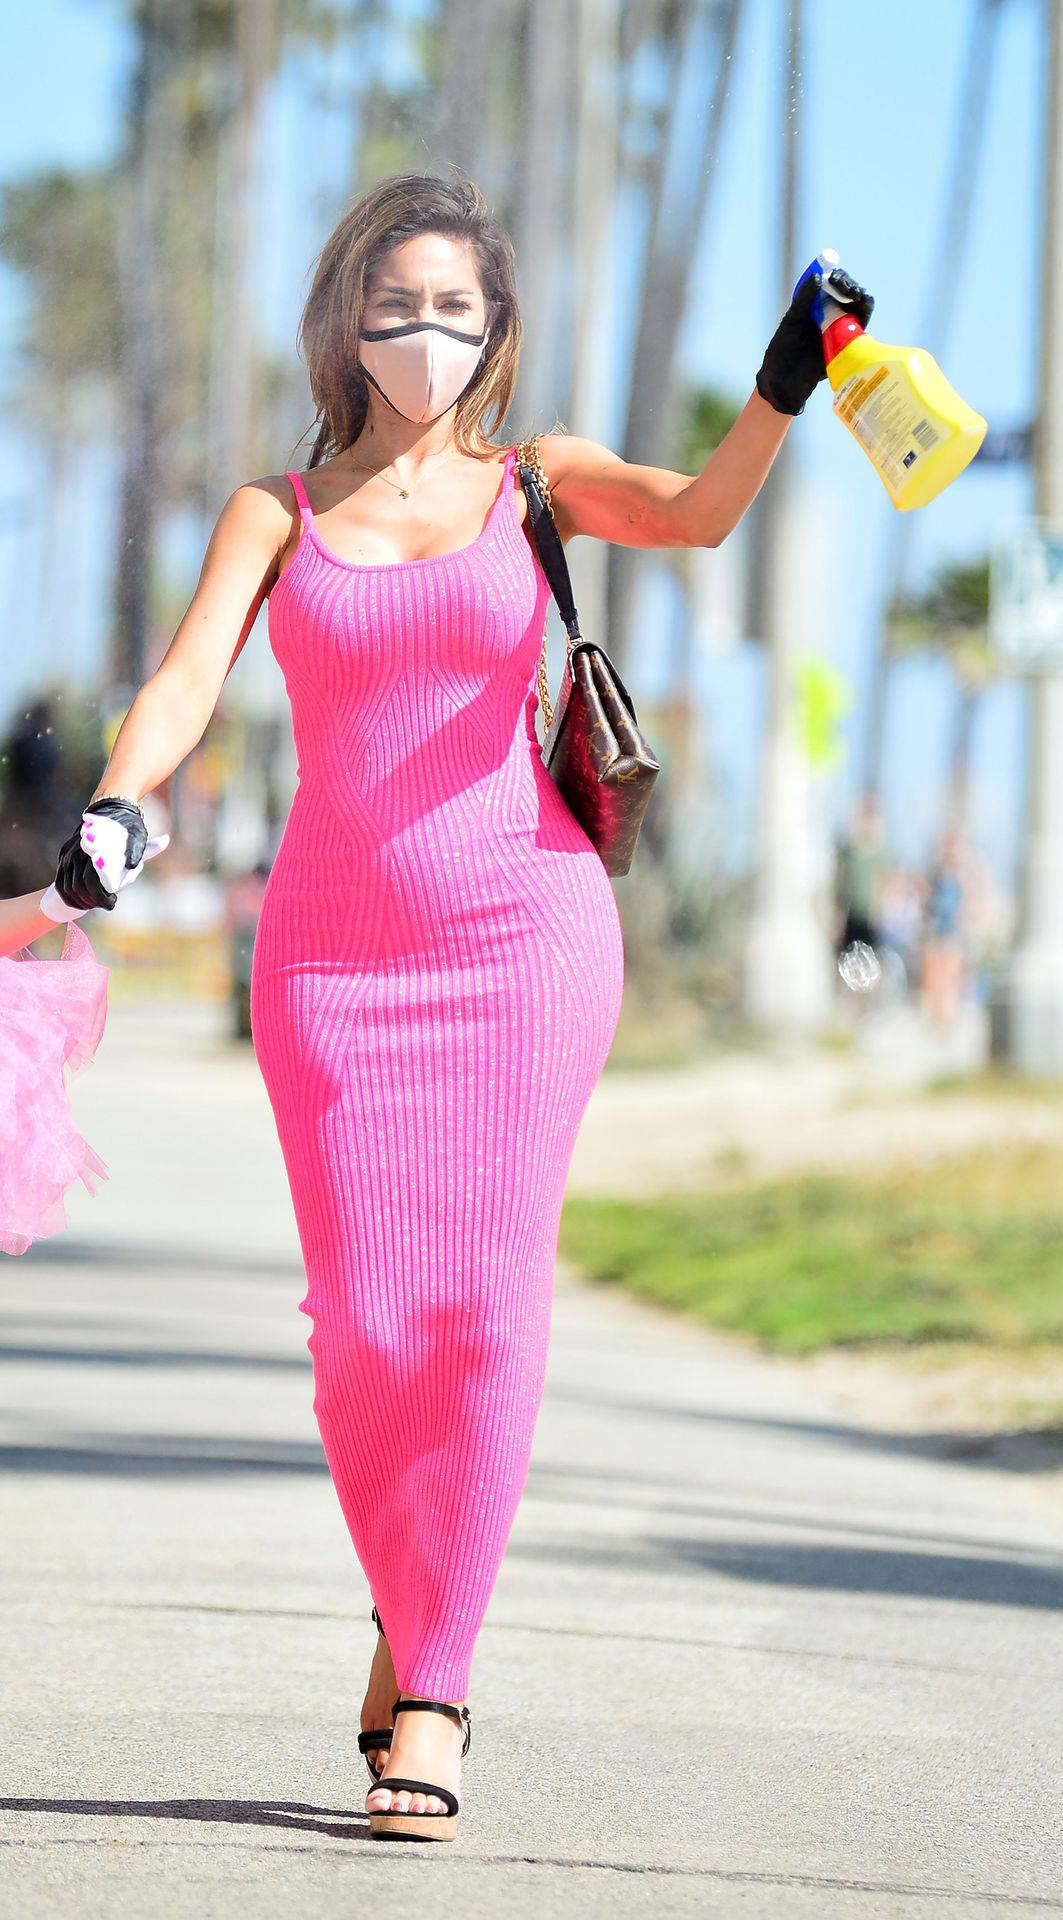 Farrah Abraham – Sexy Curvy Body In A Pink Dress Out In Los Angeles 0019